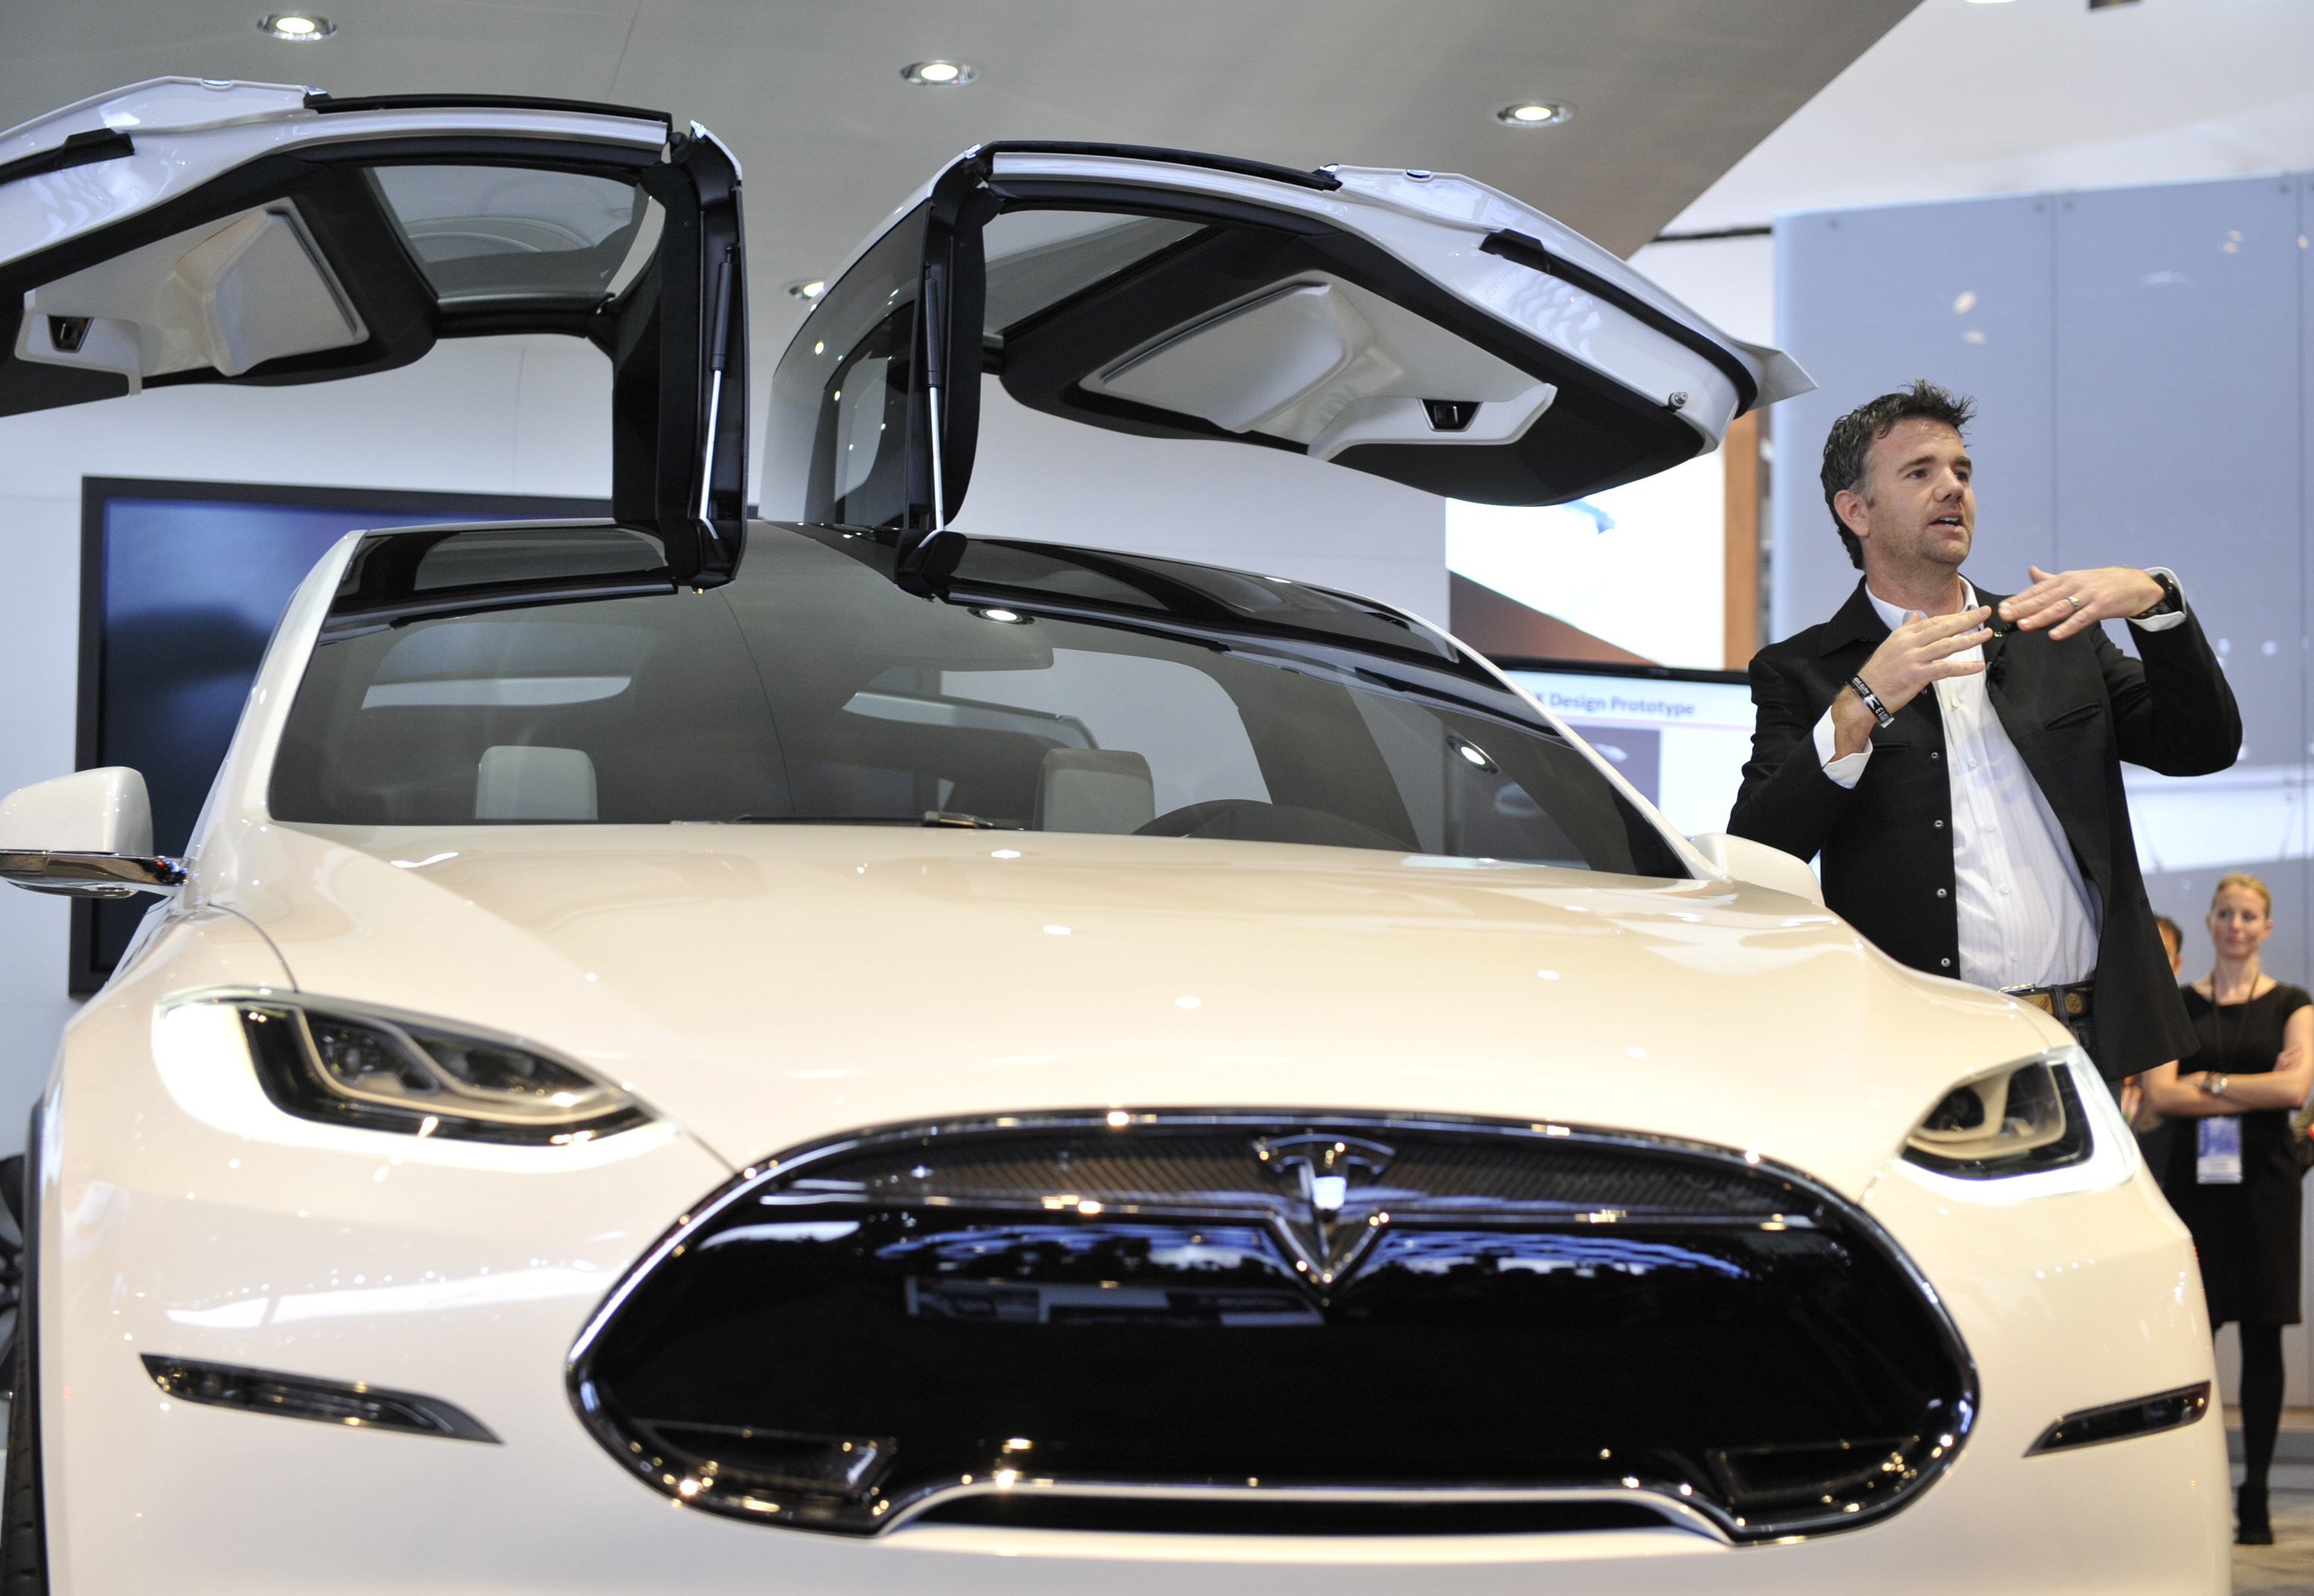 Tesla Model X Will Make The Tesla Model S Look Like Chopped Liver Morgan Stanley Analyst Says